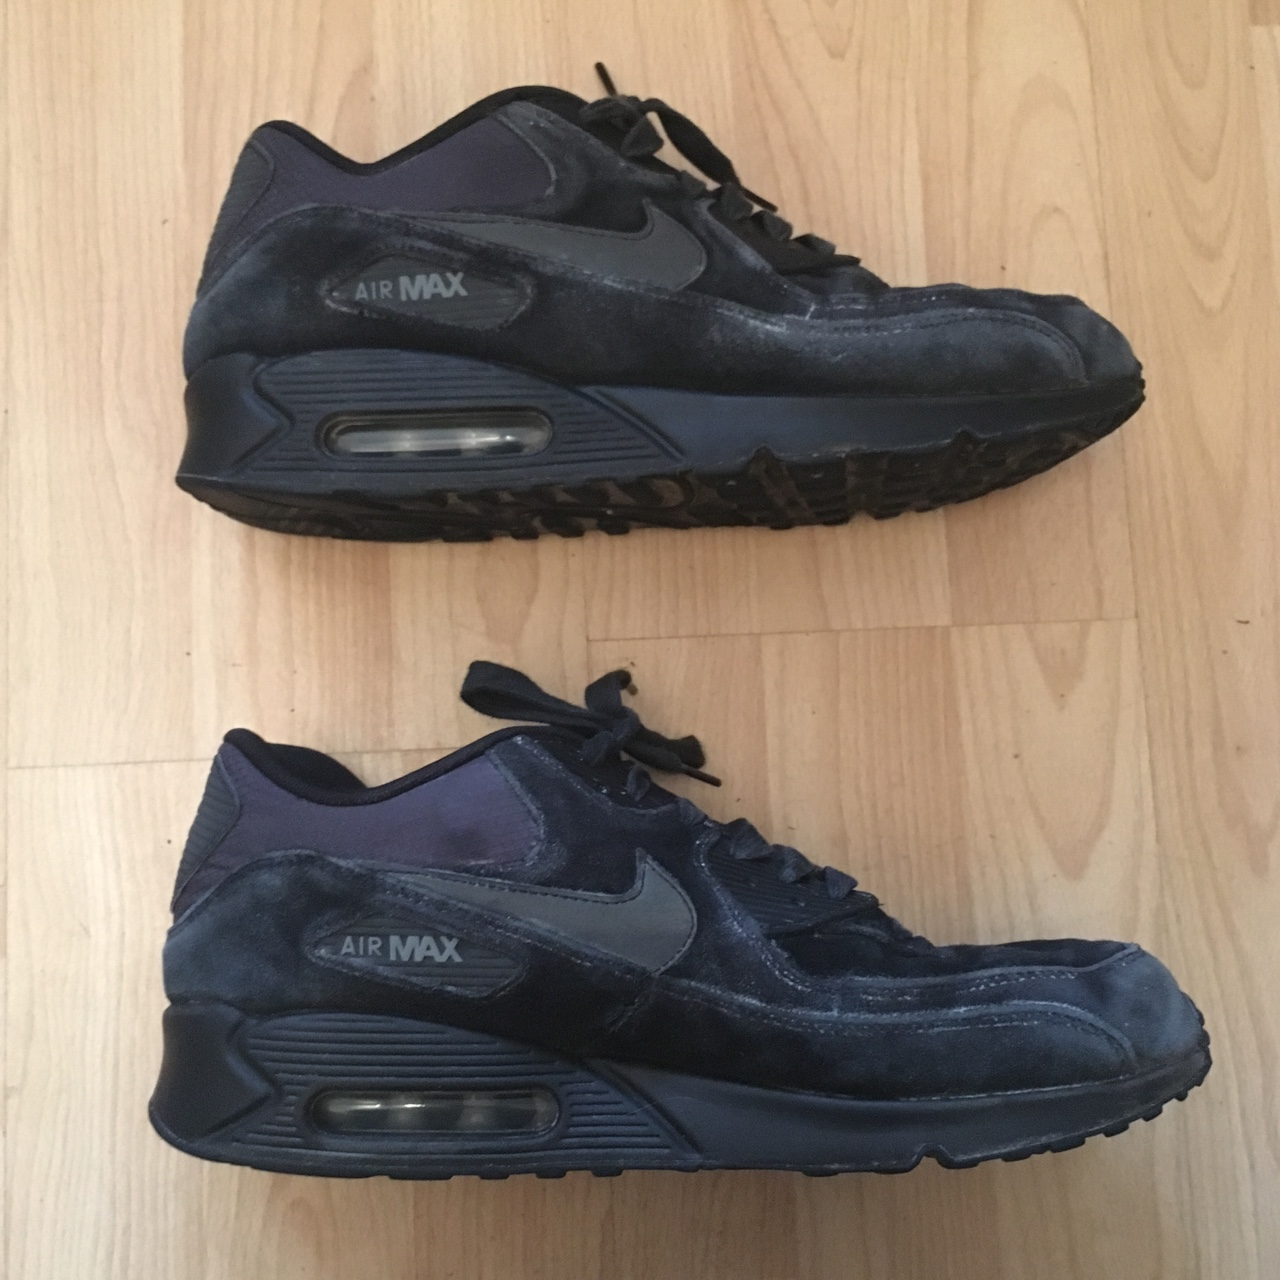 with reflective black Max Nike Air Depop 3M Suede All 1 DWEY9H2I